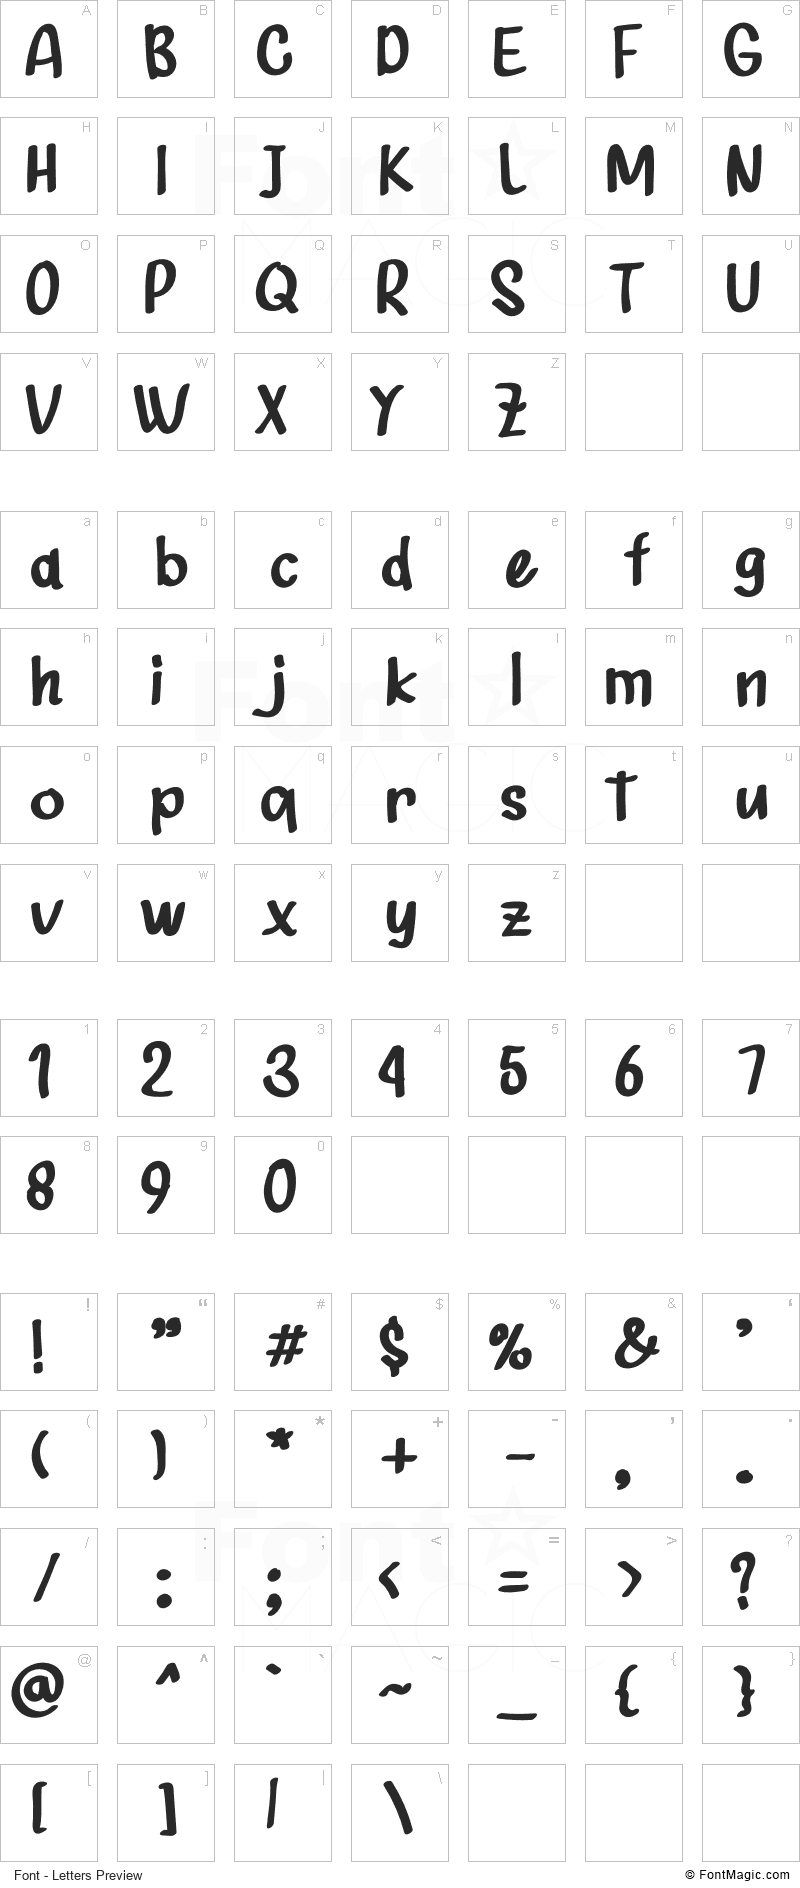 Shunshise Font - All Latters Preview Chart